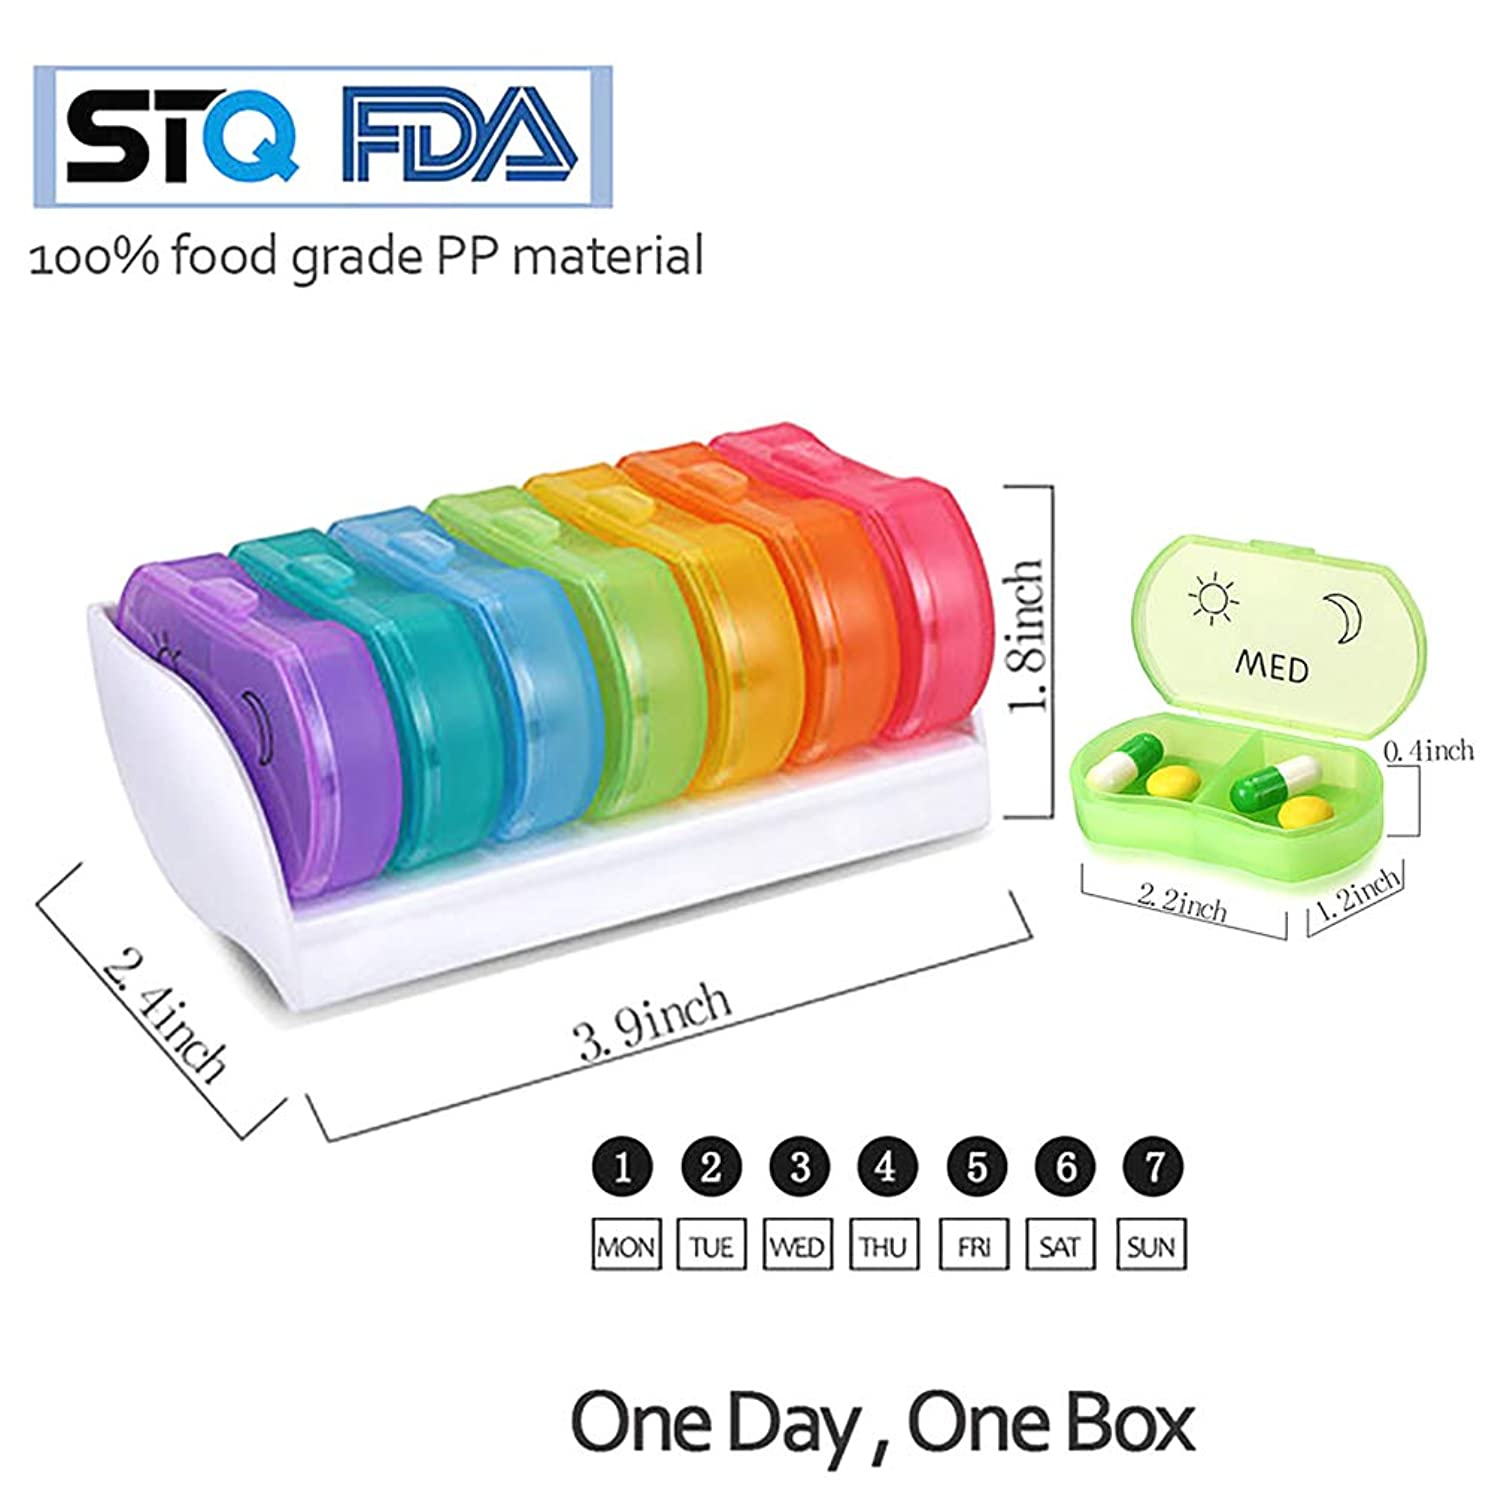 Portable Daily Dill Manager (Twice a Day) The Weekly Morning/Afternoon Pill Box Can be Placed in a Pocket Wallet for Work and Travel and Can Hold Vitamin Fish Oil Supplements and Medications